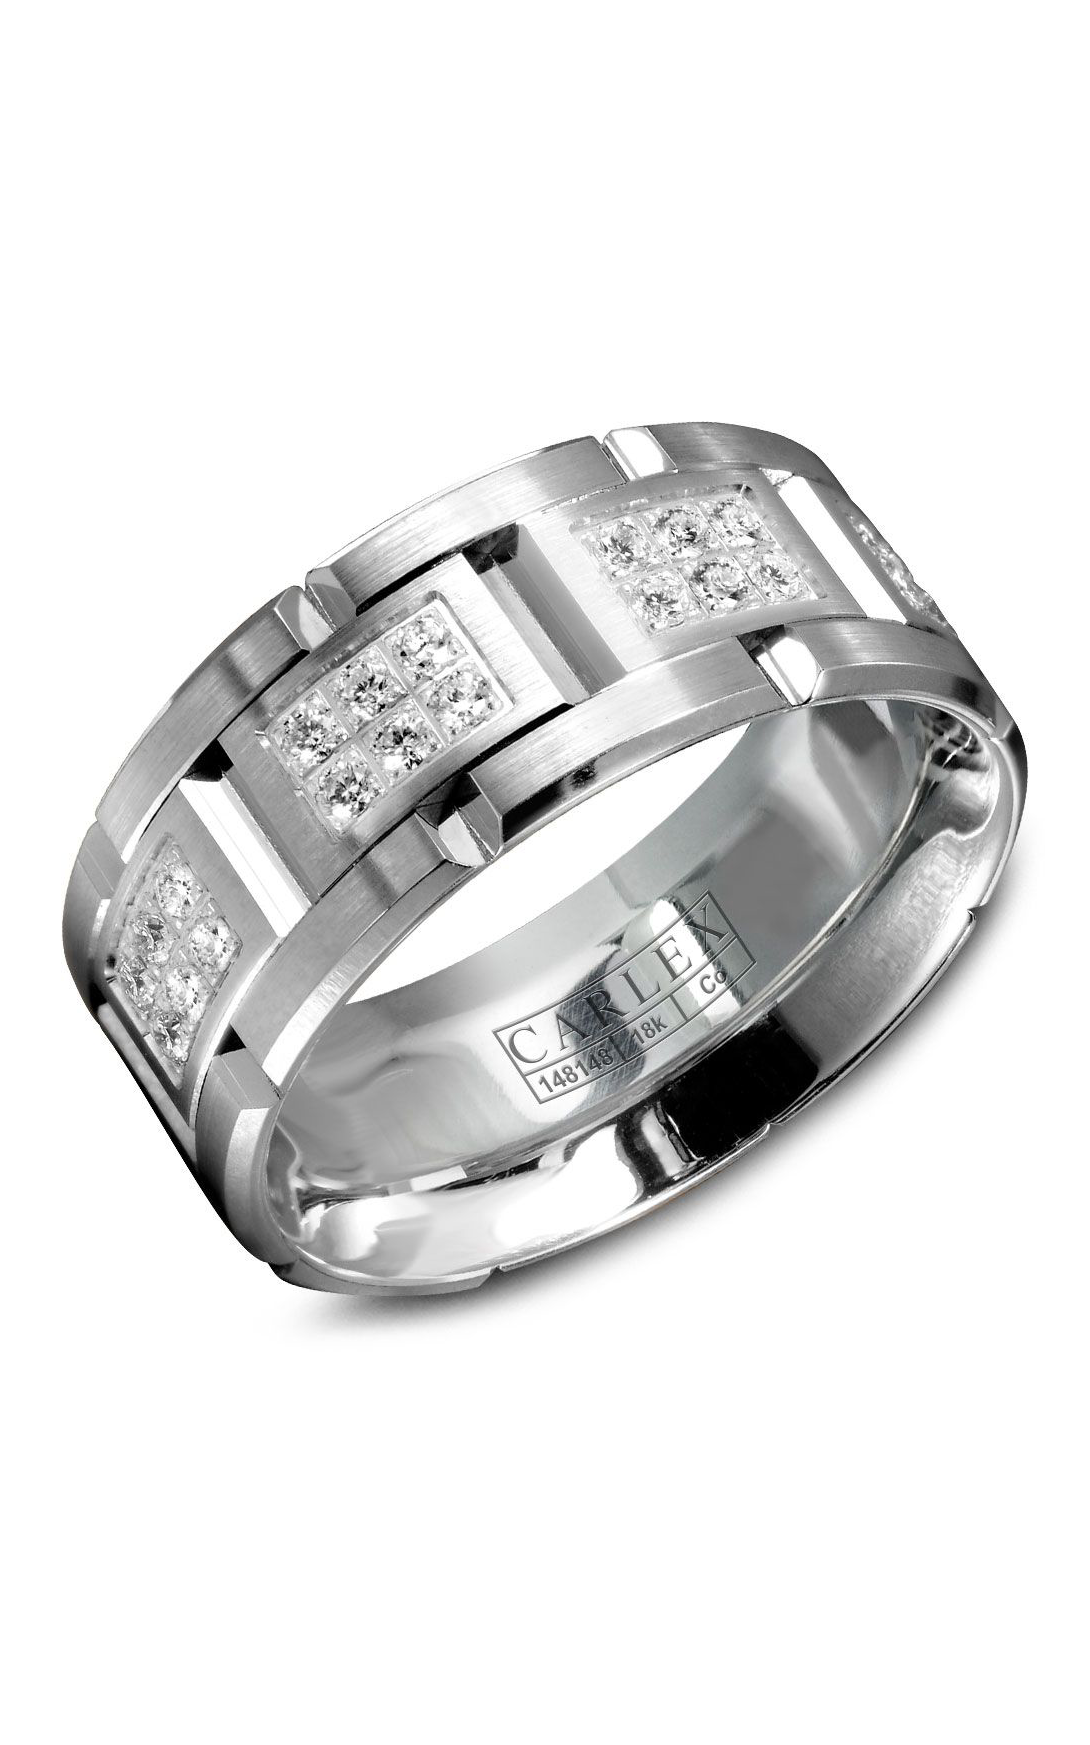 Carlex Sport Men's Wedding Band WB-9155WC product image